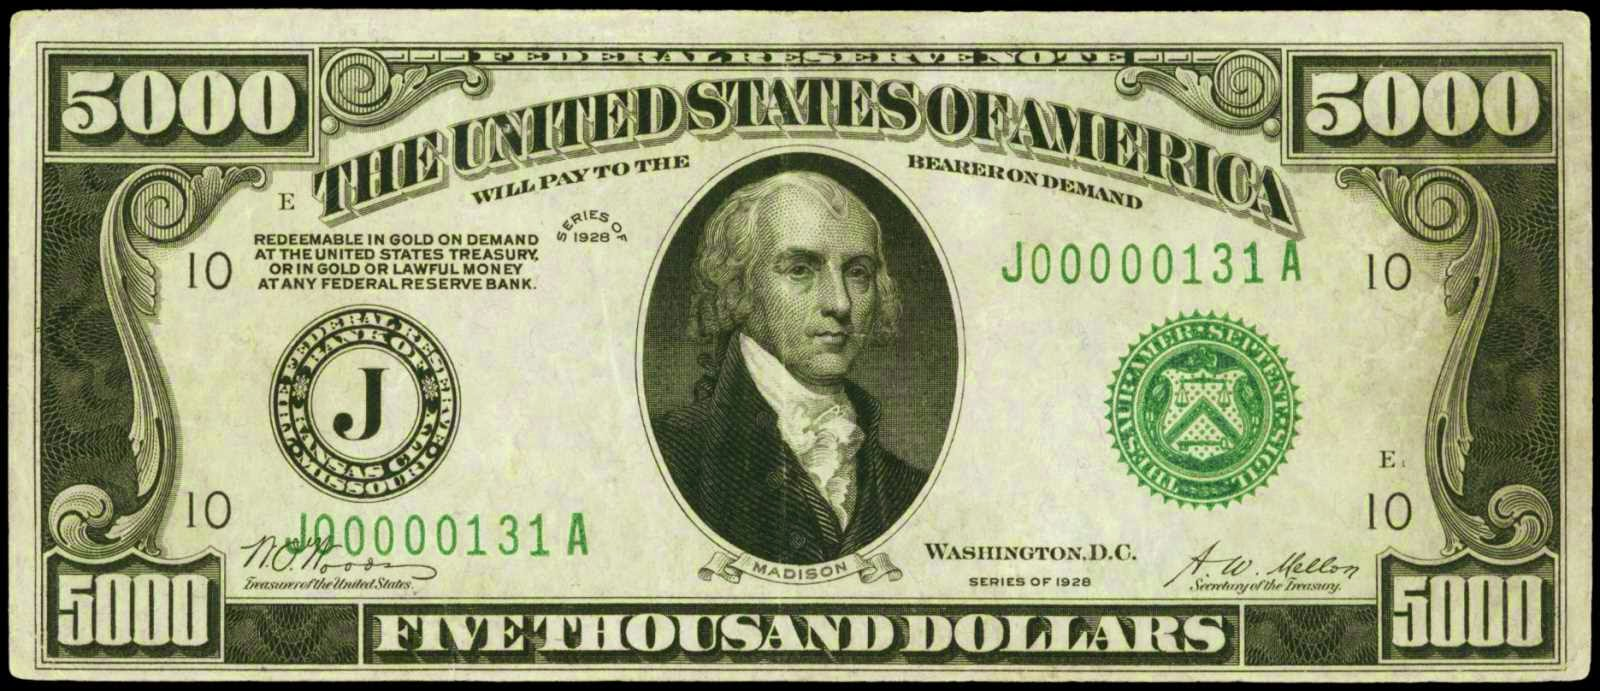 1928 Five Thousand Dollar Federal Reserve Note James Madison